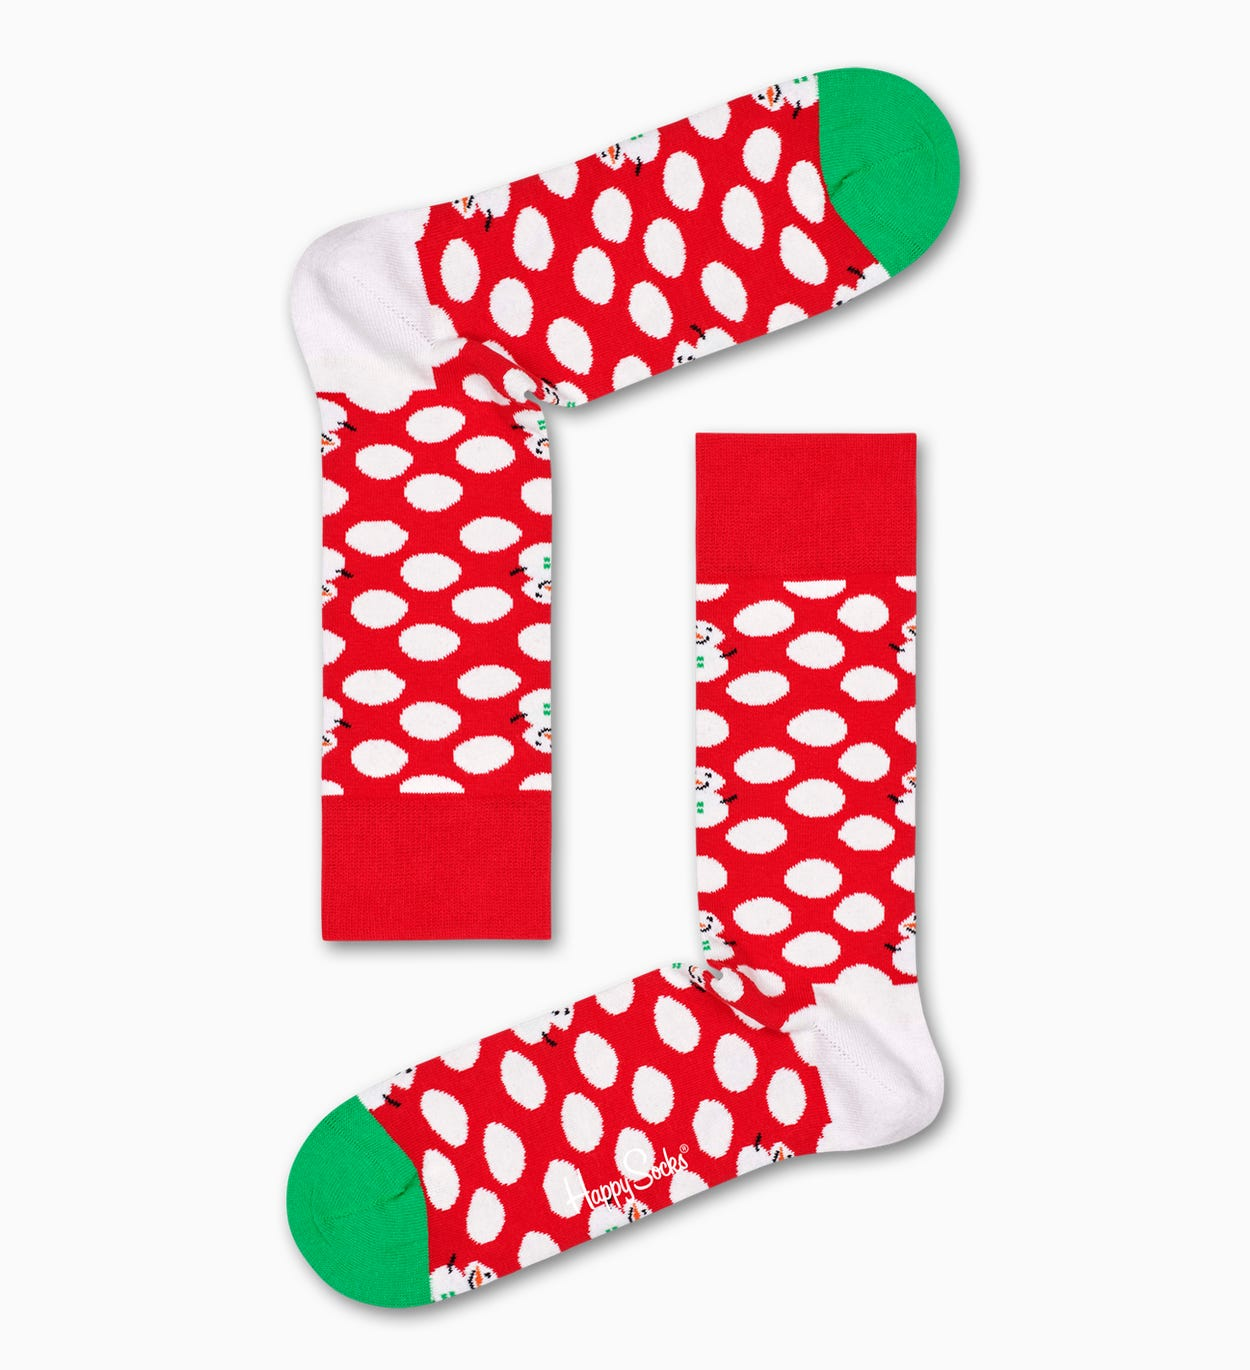 Christmas Socks Gift Box | Happy Socks